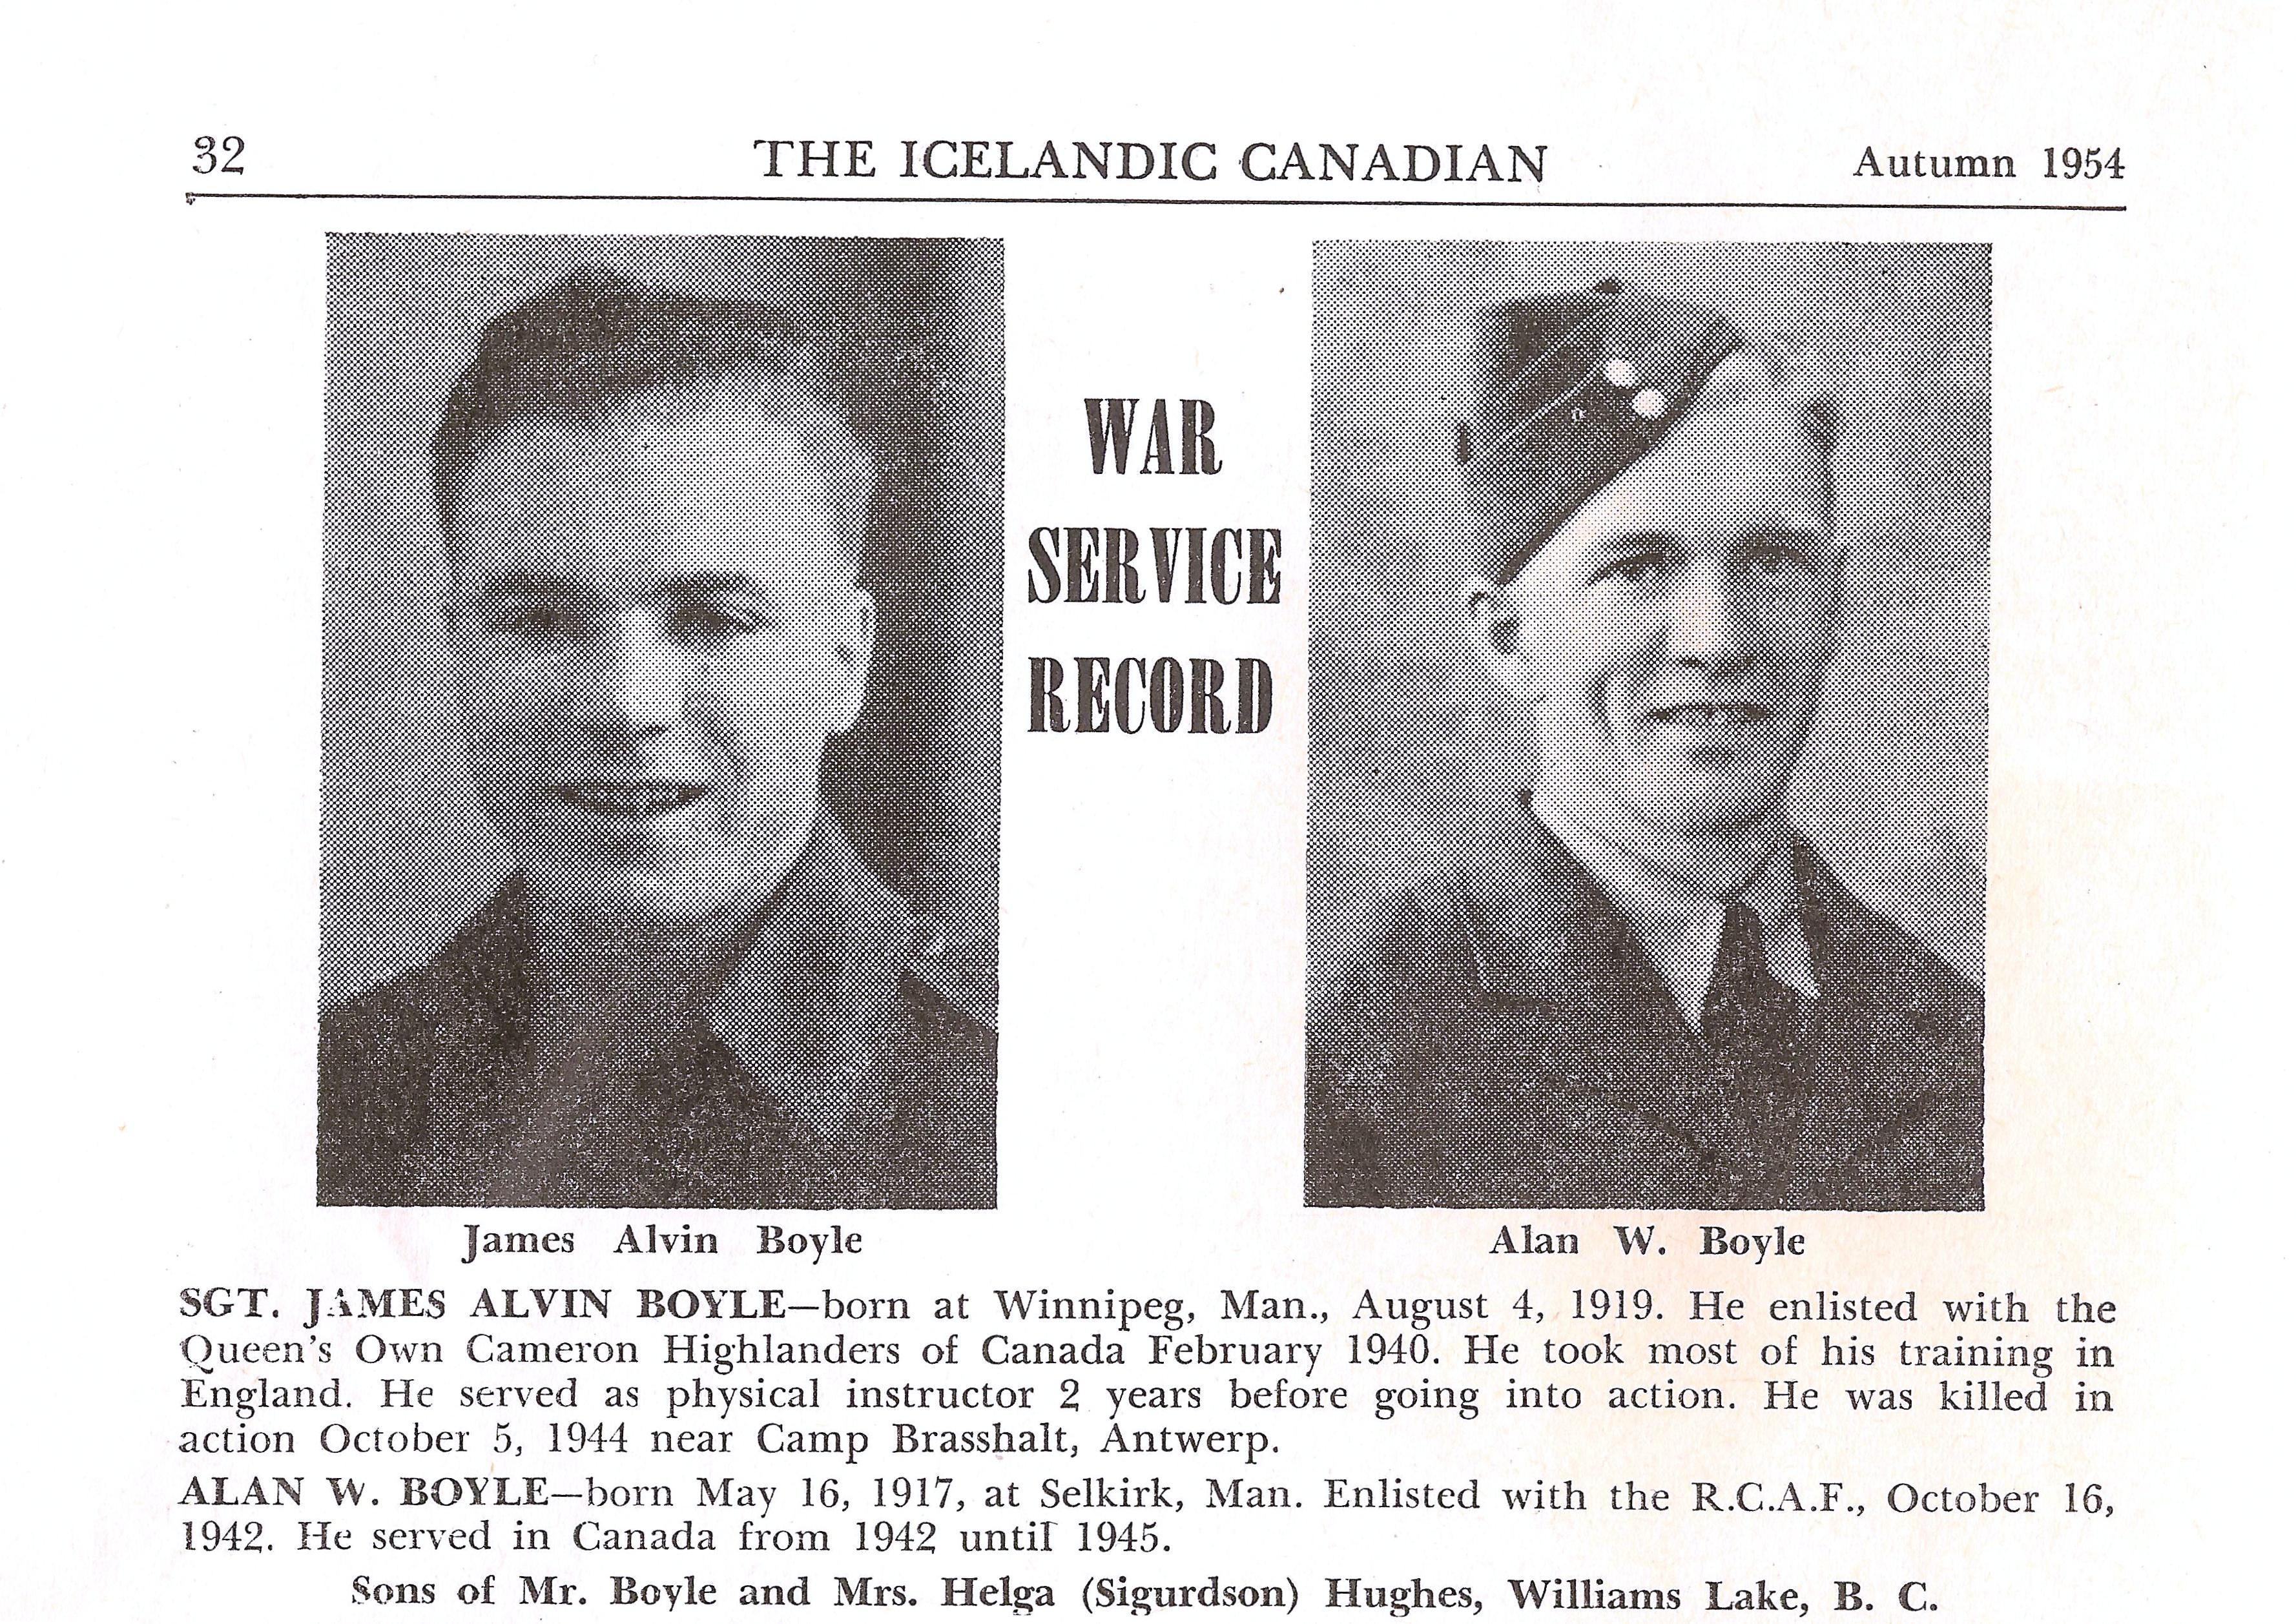 """Newspaper Clipping– I scanned this image from an old publication I have called """"The Icelandic Canadian"""" which was published out of Manitoba in Autumn of 1954. It also has a photo and some information of my paternal grandfather, Allan William Boyle."""